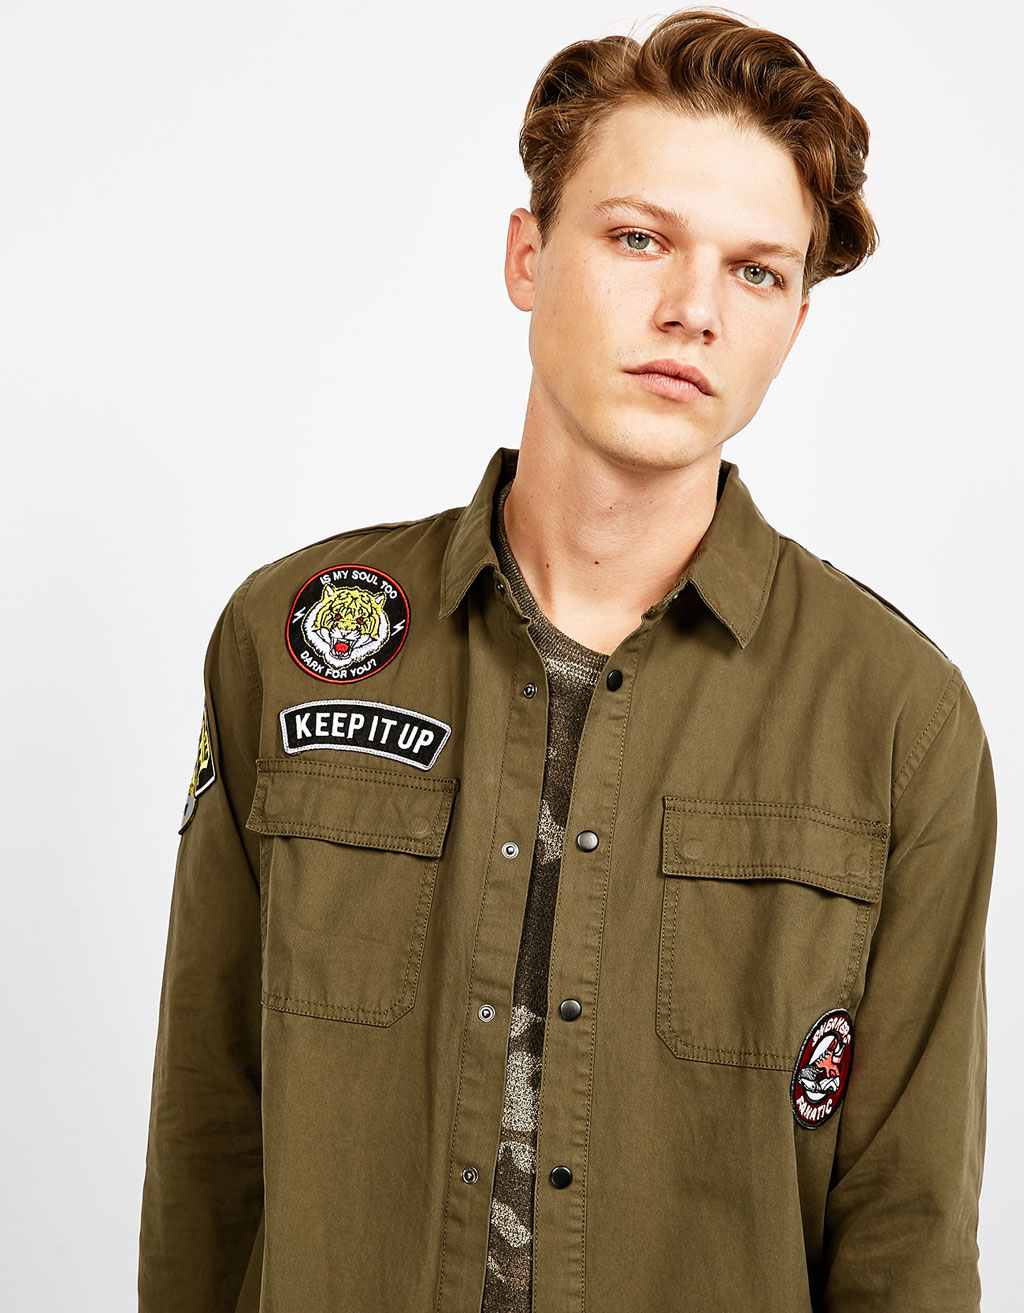 Military overshirt with patches